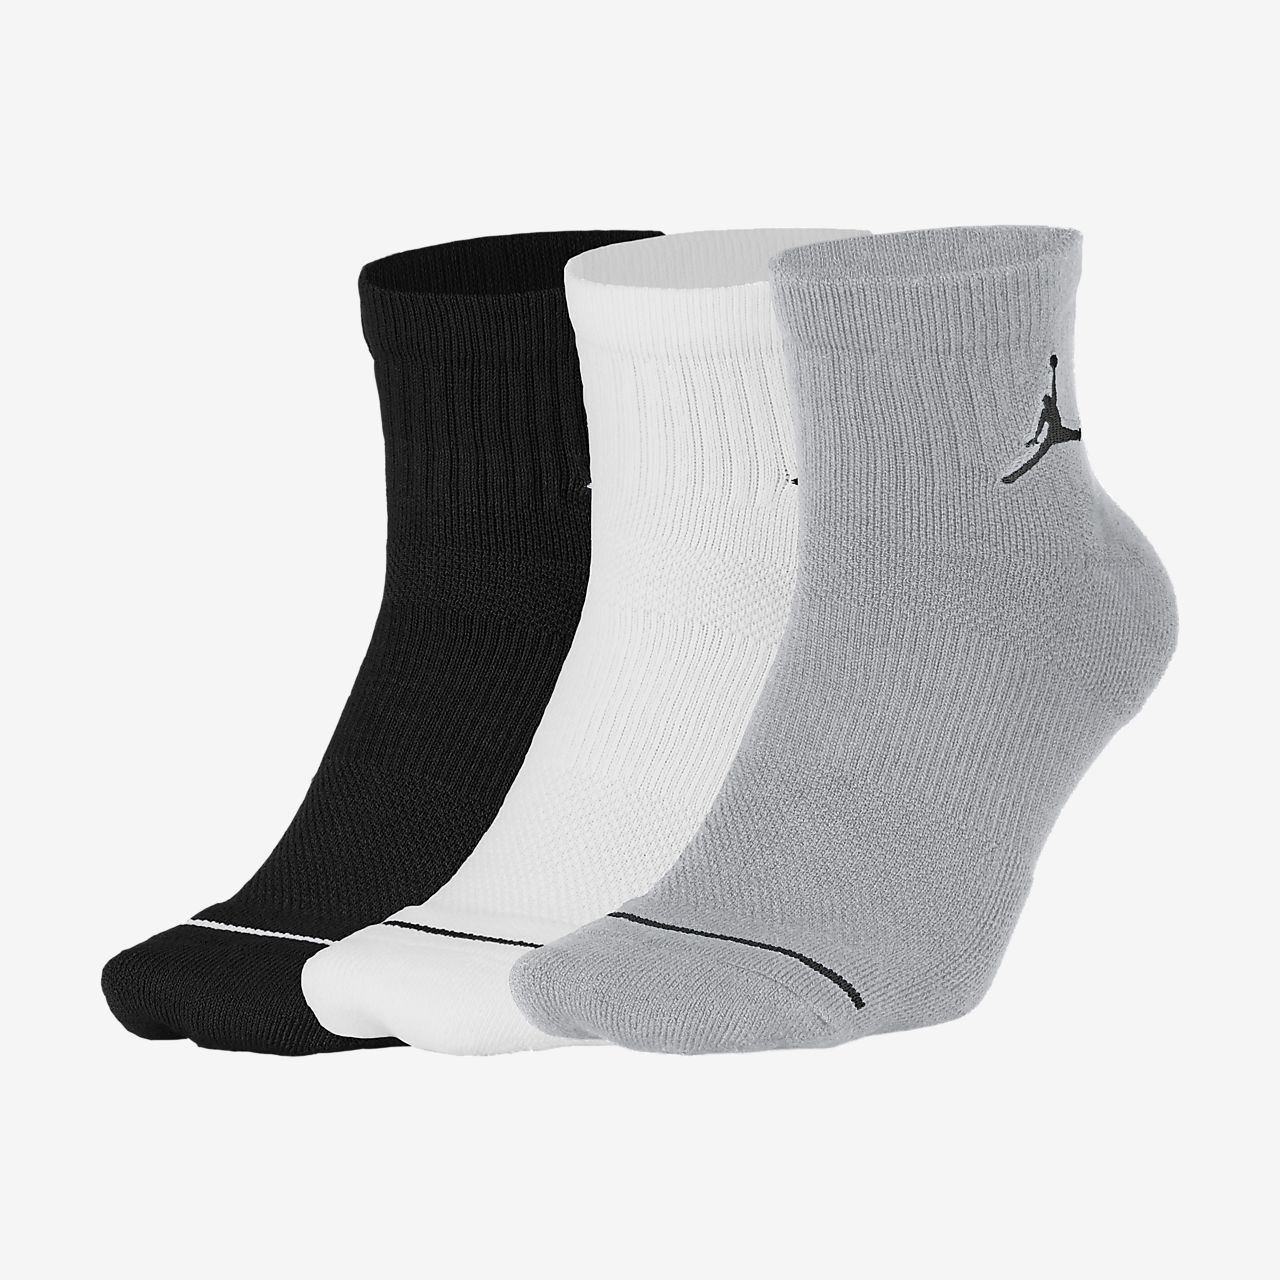 Jordan Jumpman Quarter Socks (3 Pair)